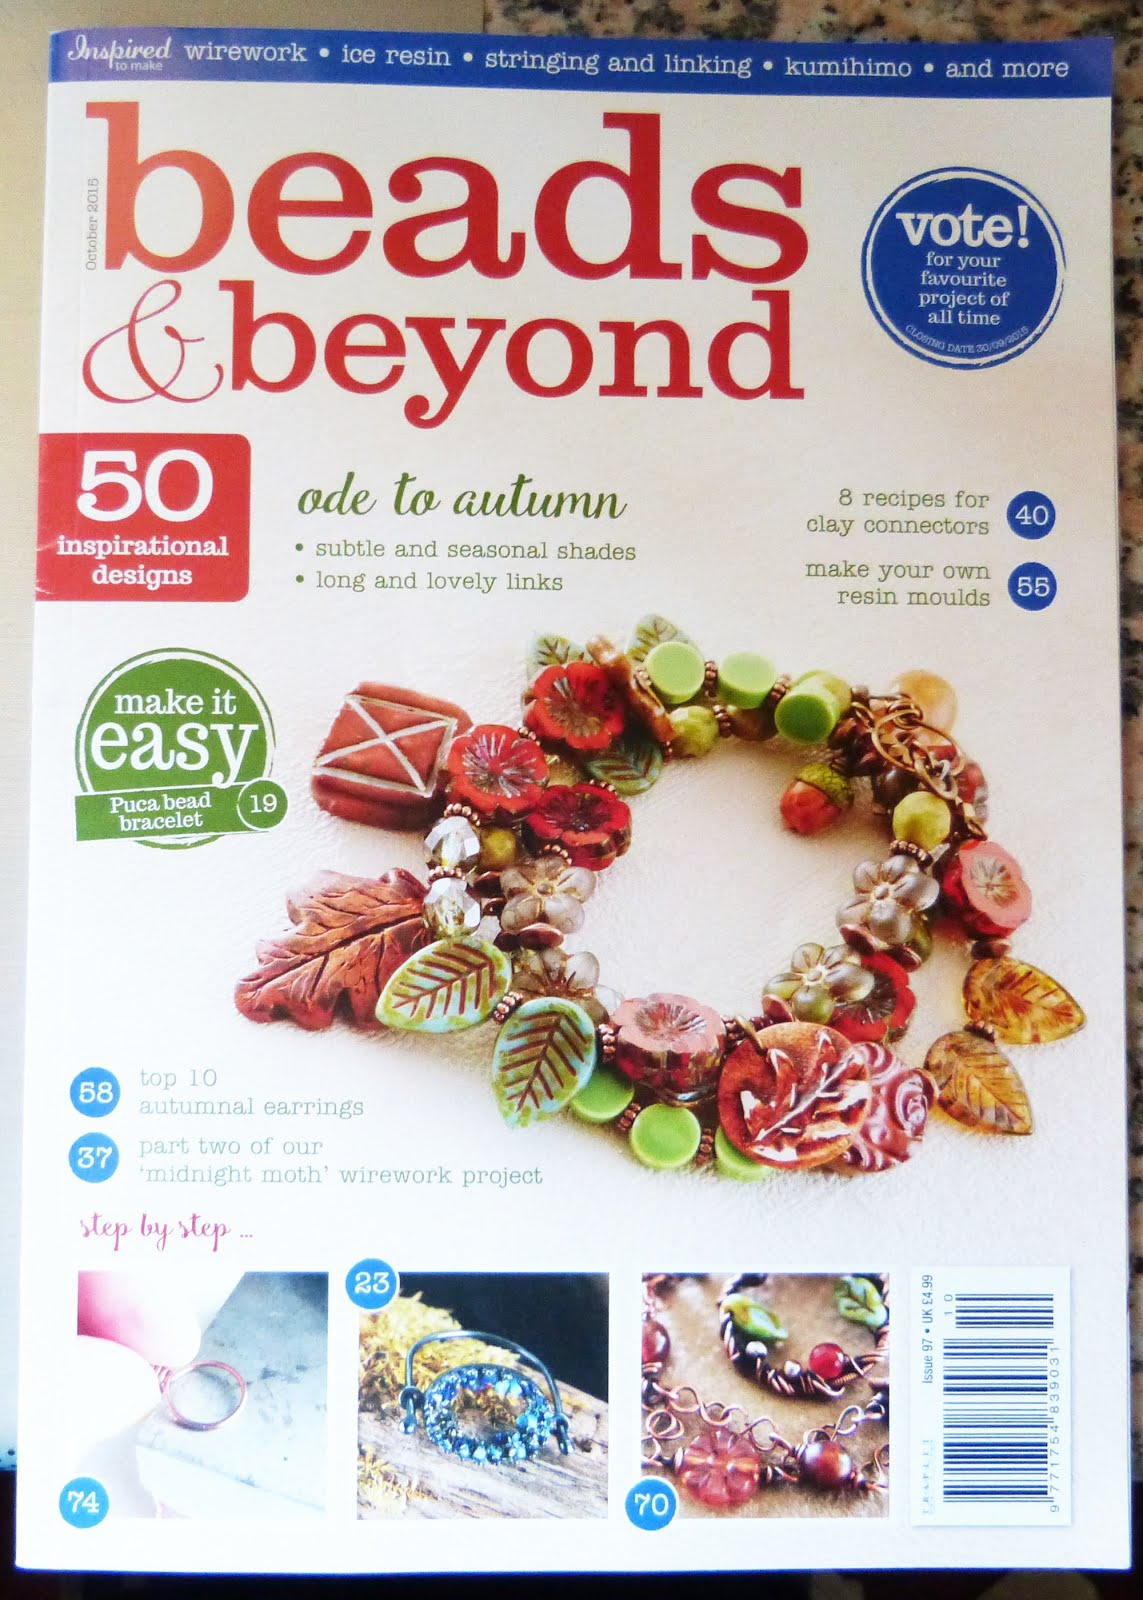 Published Beads & Beyond